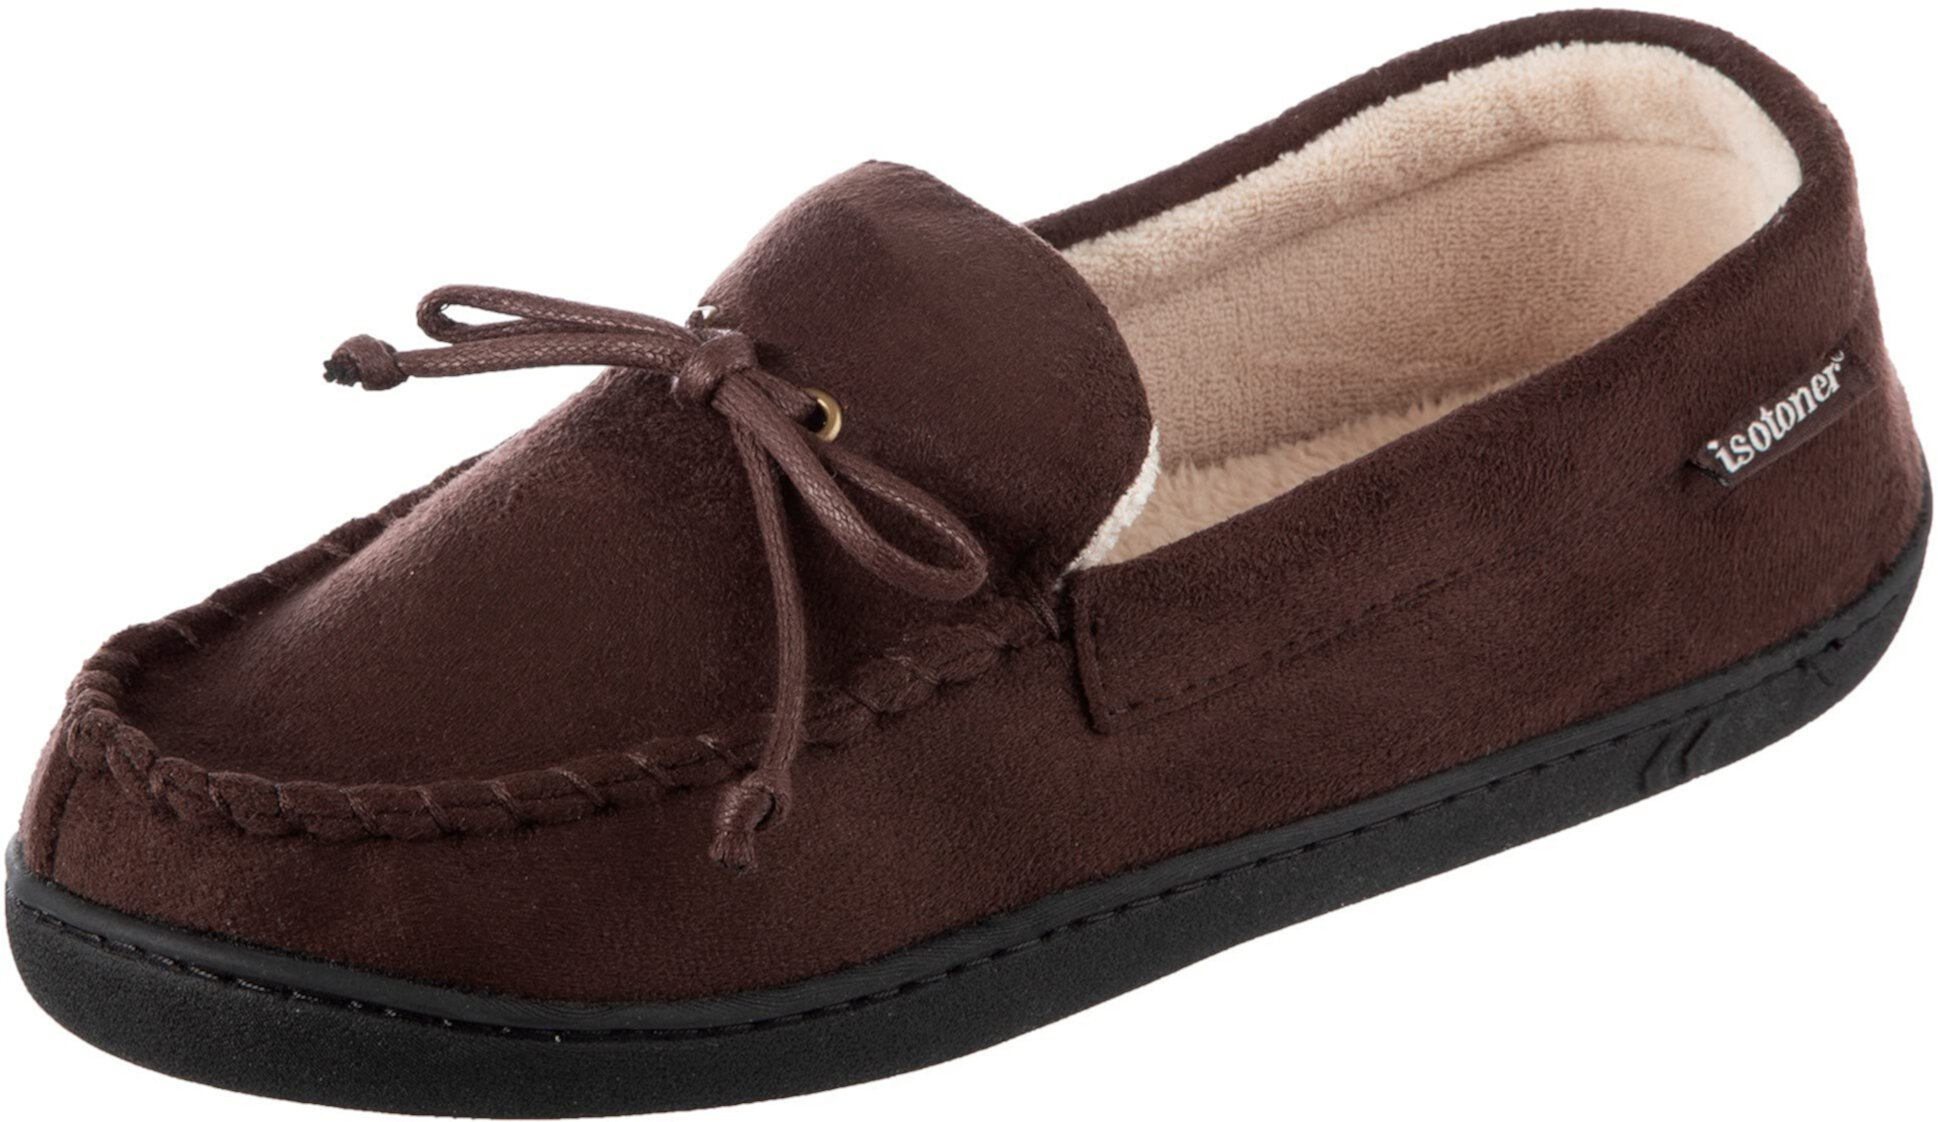 Whipstitch Gel Infused Memory Foam Moccasin ISOTONER